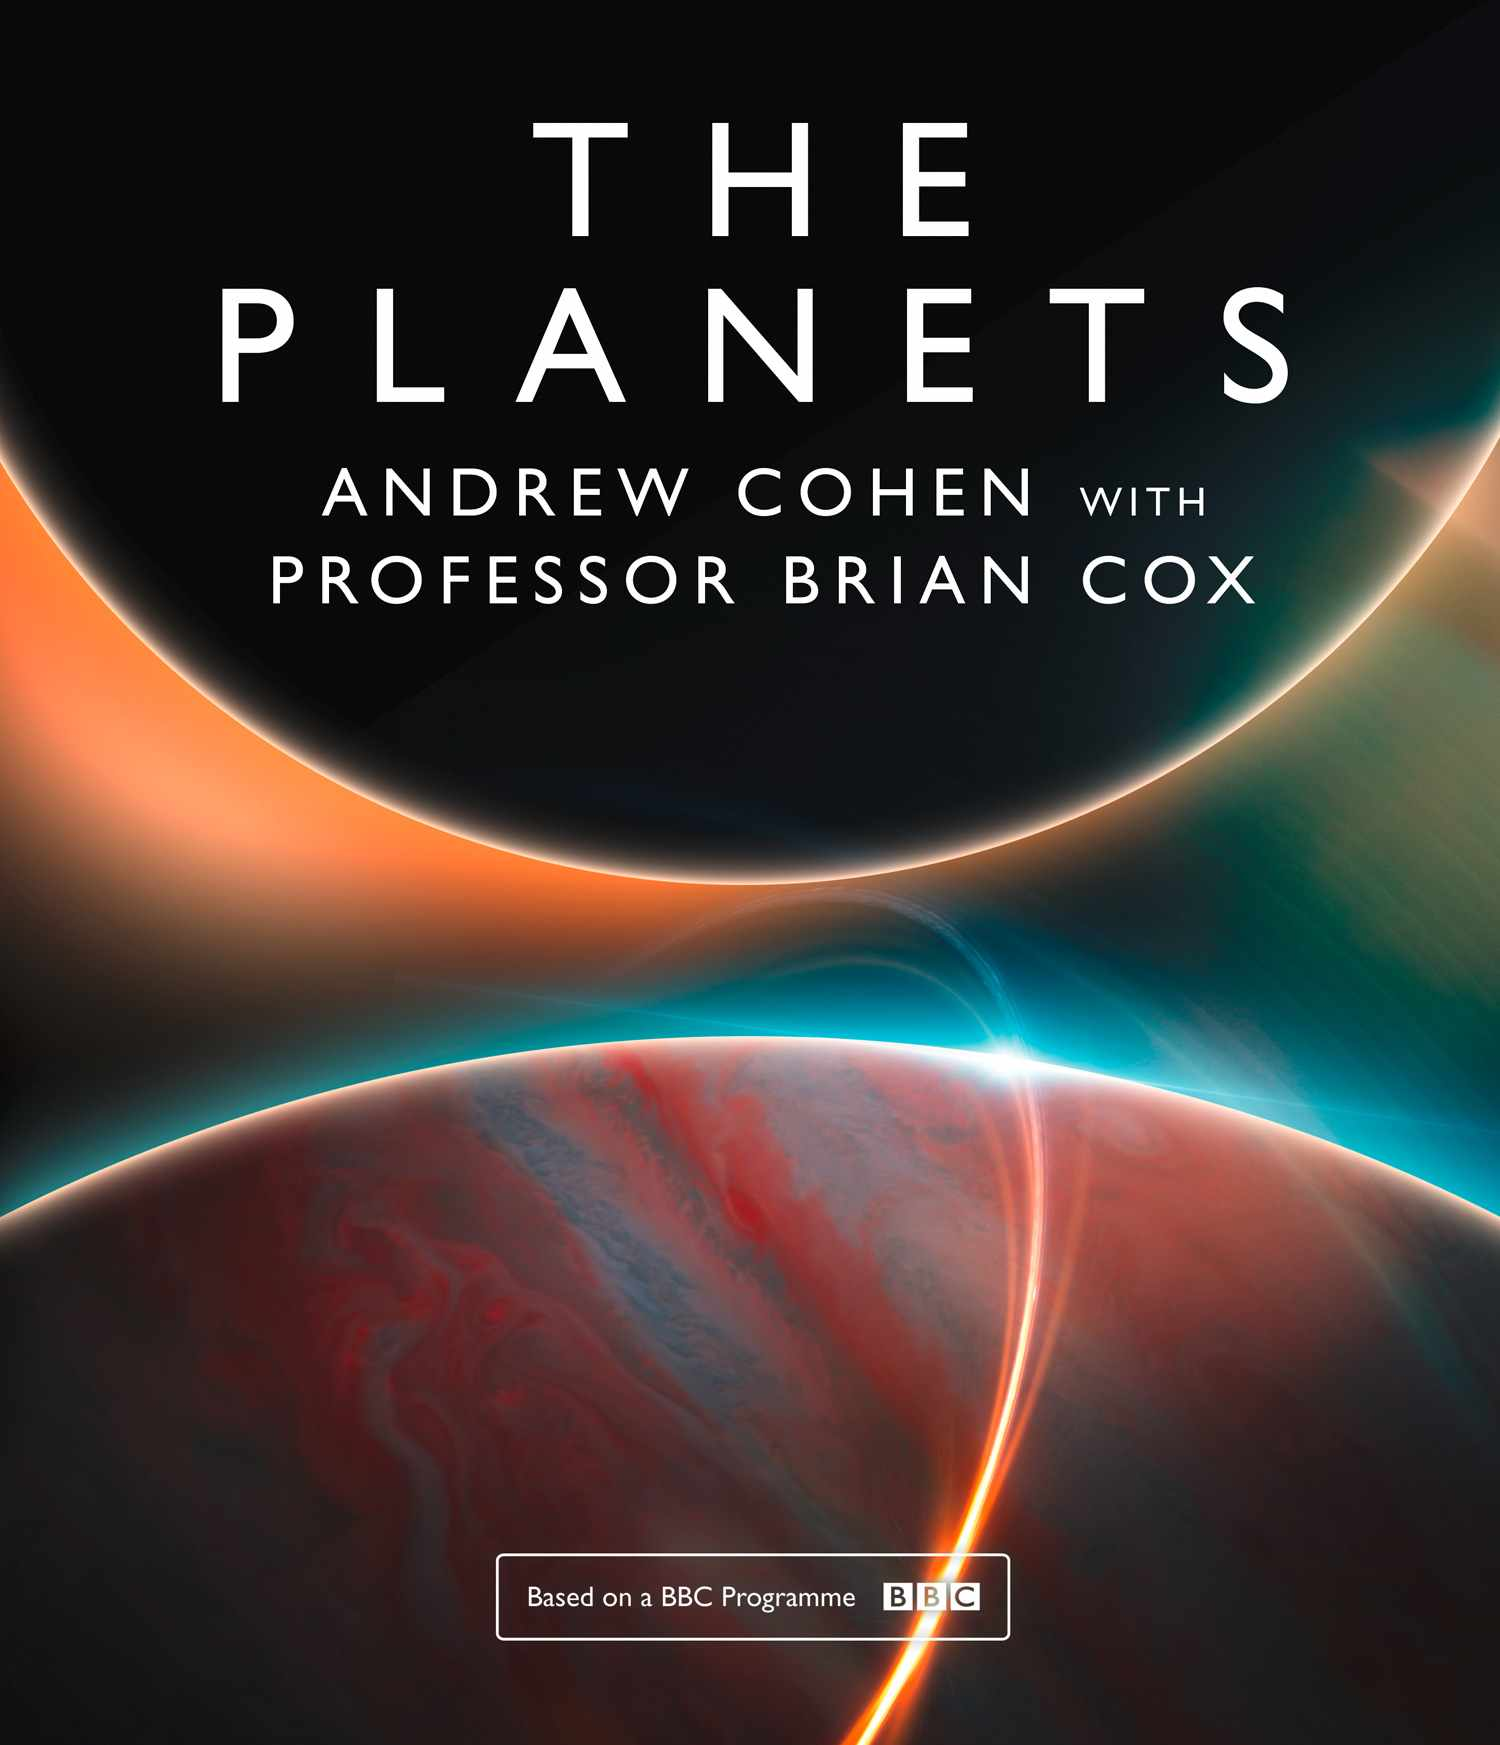 The Planets 079588-FCX